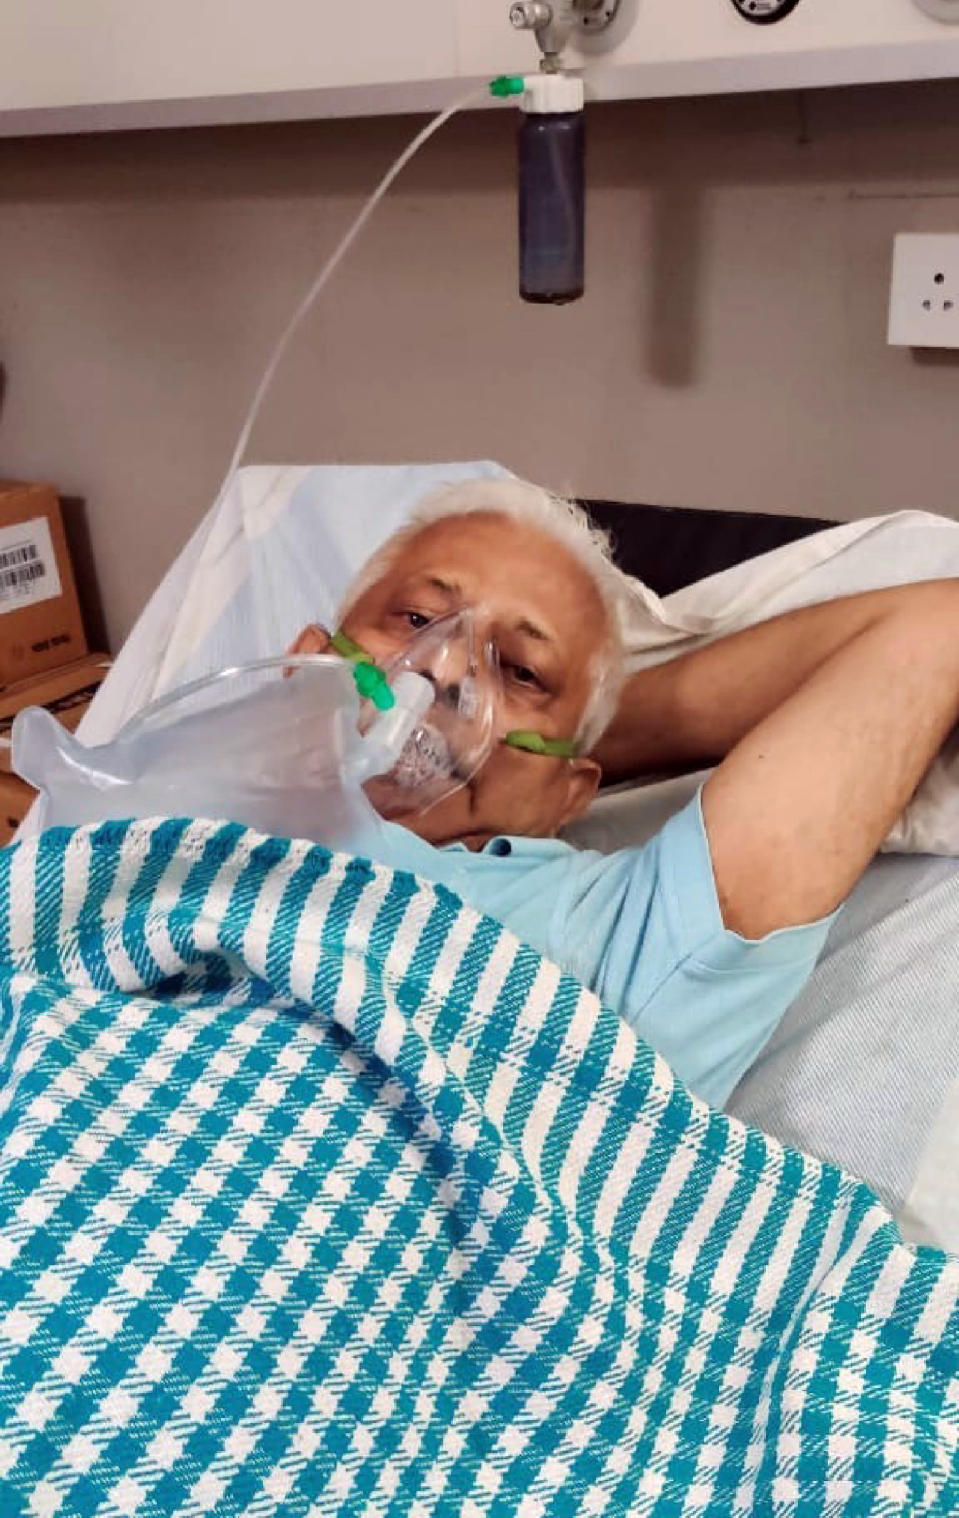 In this photo provided by the Rev. Cedric Prakash, the Rev. Jerry Sequeira is given oxygen in Ahmedabad, India, during the country's second wave of the coronavirus pandemic. Sequeira died from COVID-19 on April 18, 2021. (Cedric Prakash via AP)